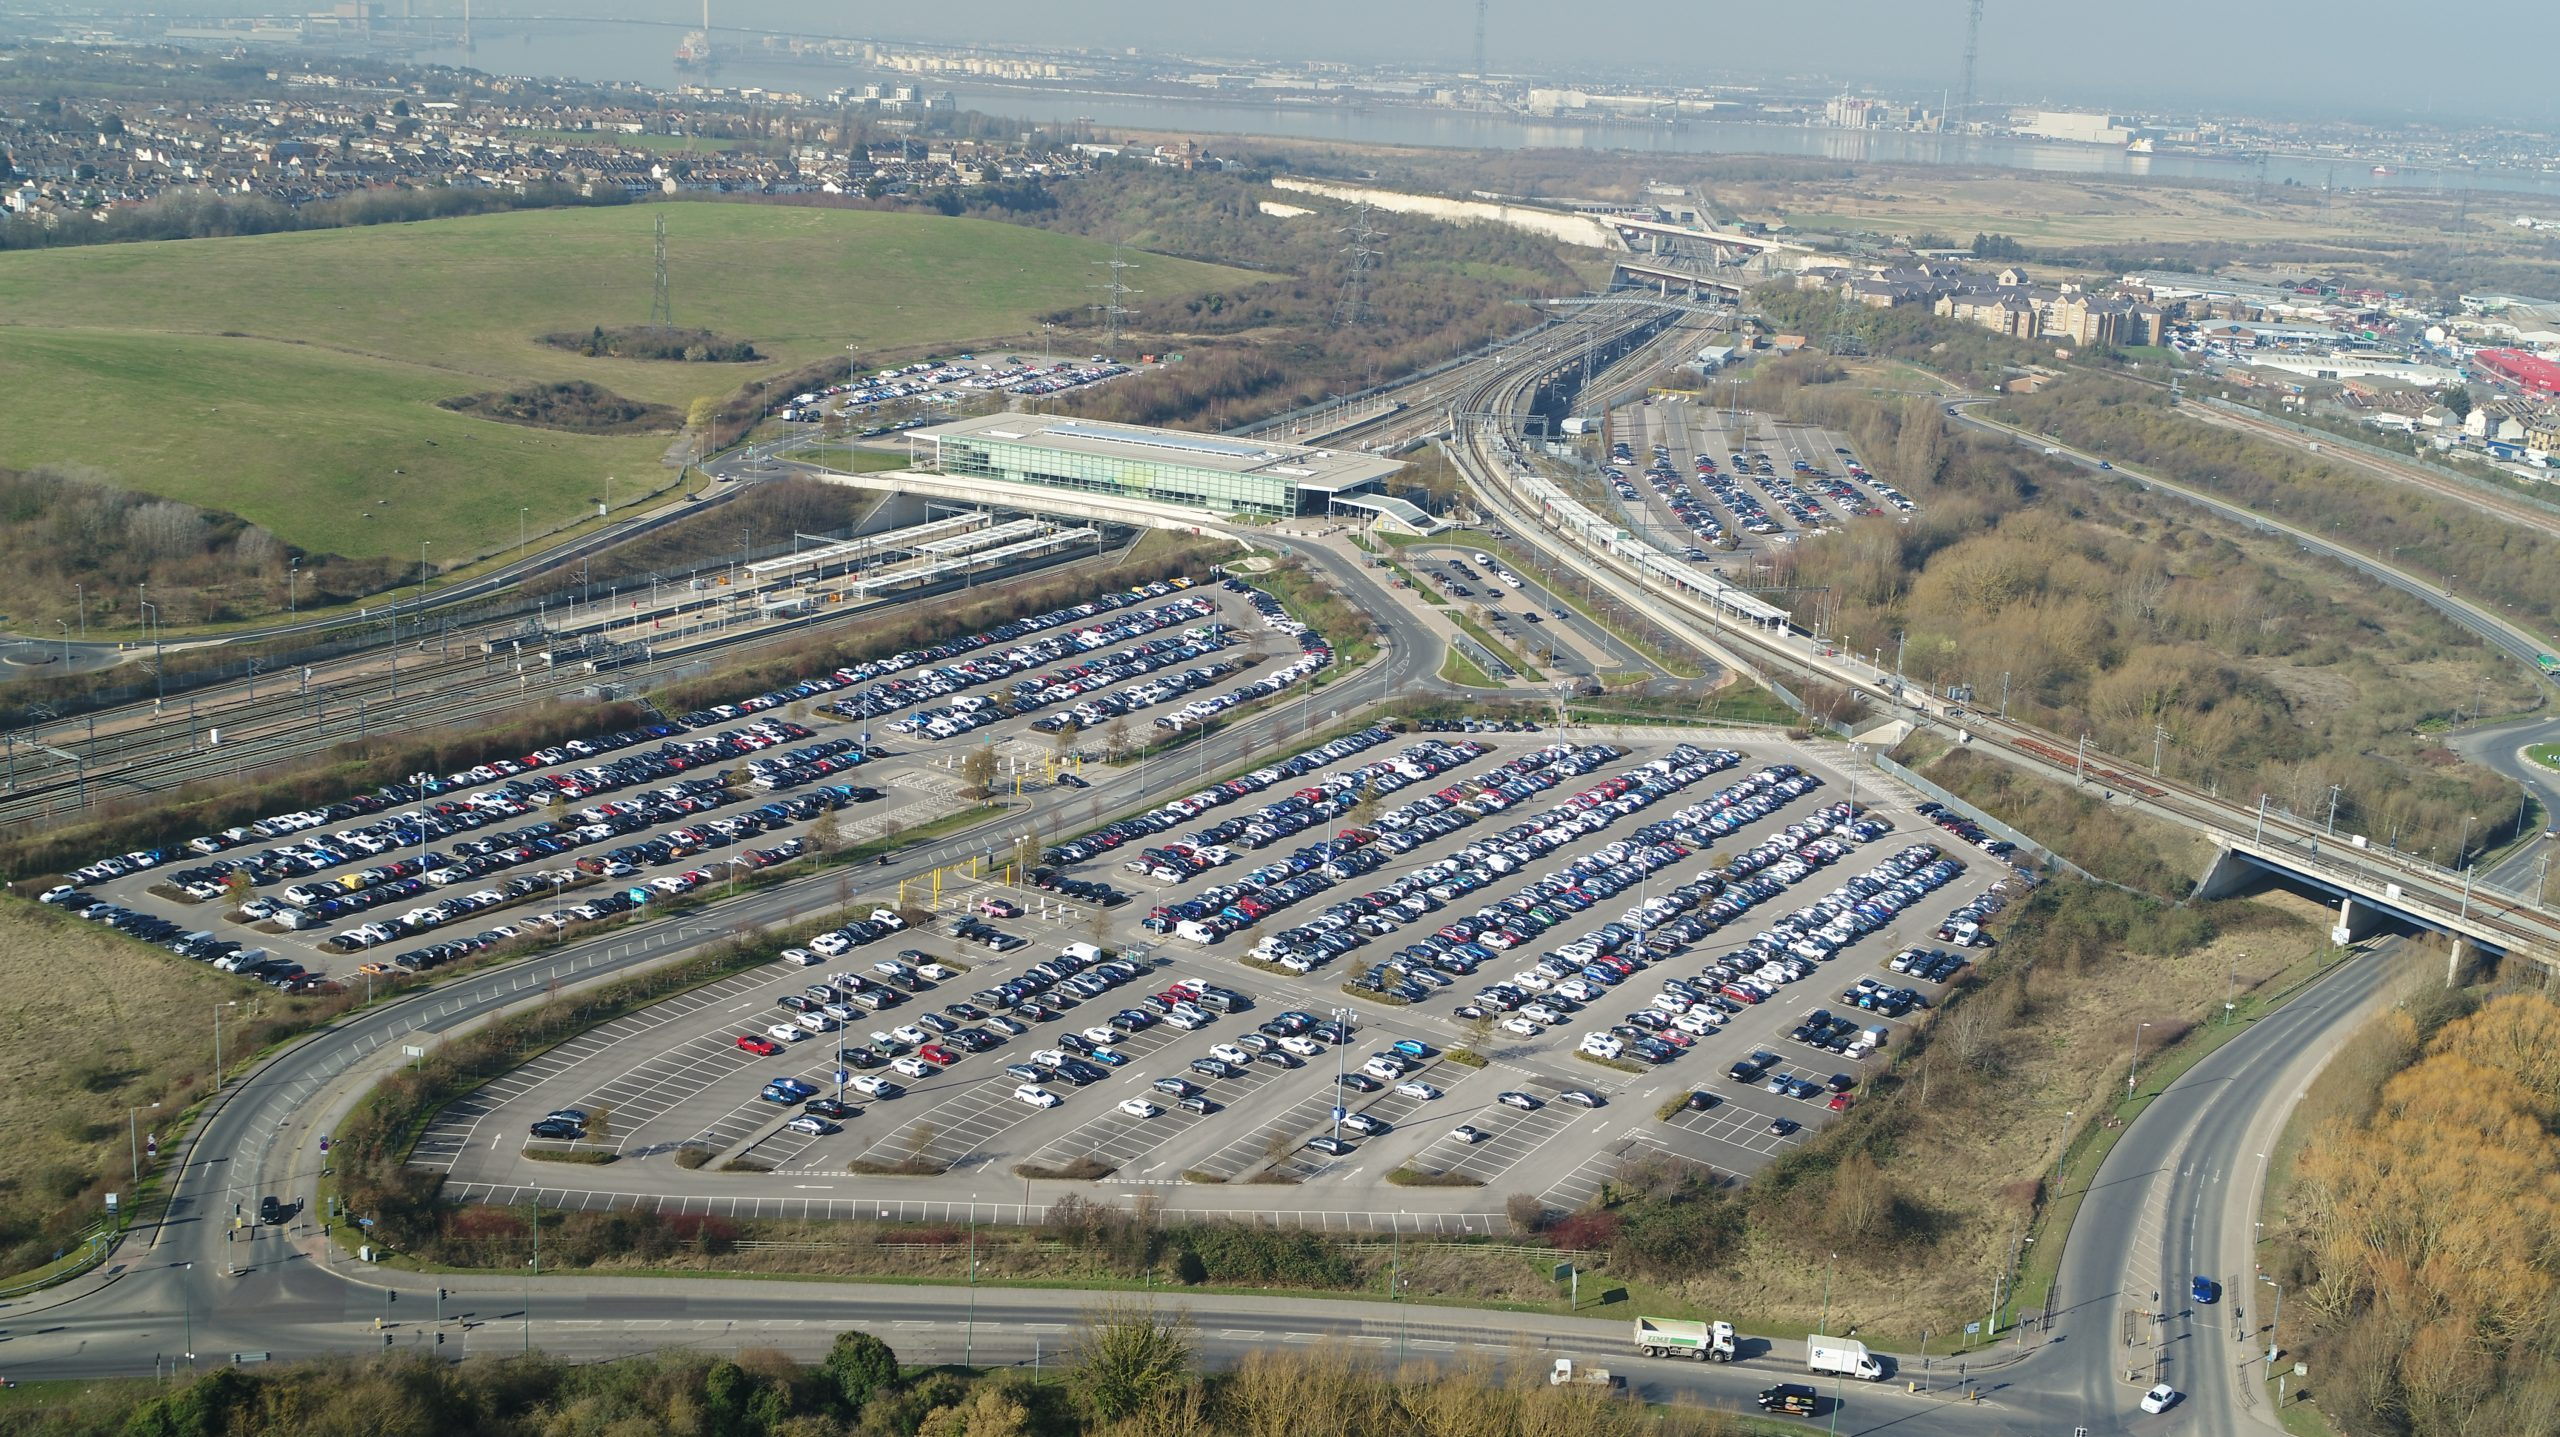 Ebbsfleet car parking wide shot